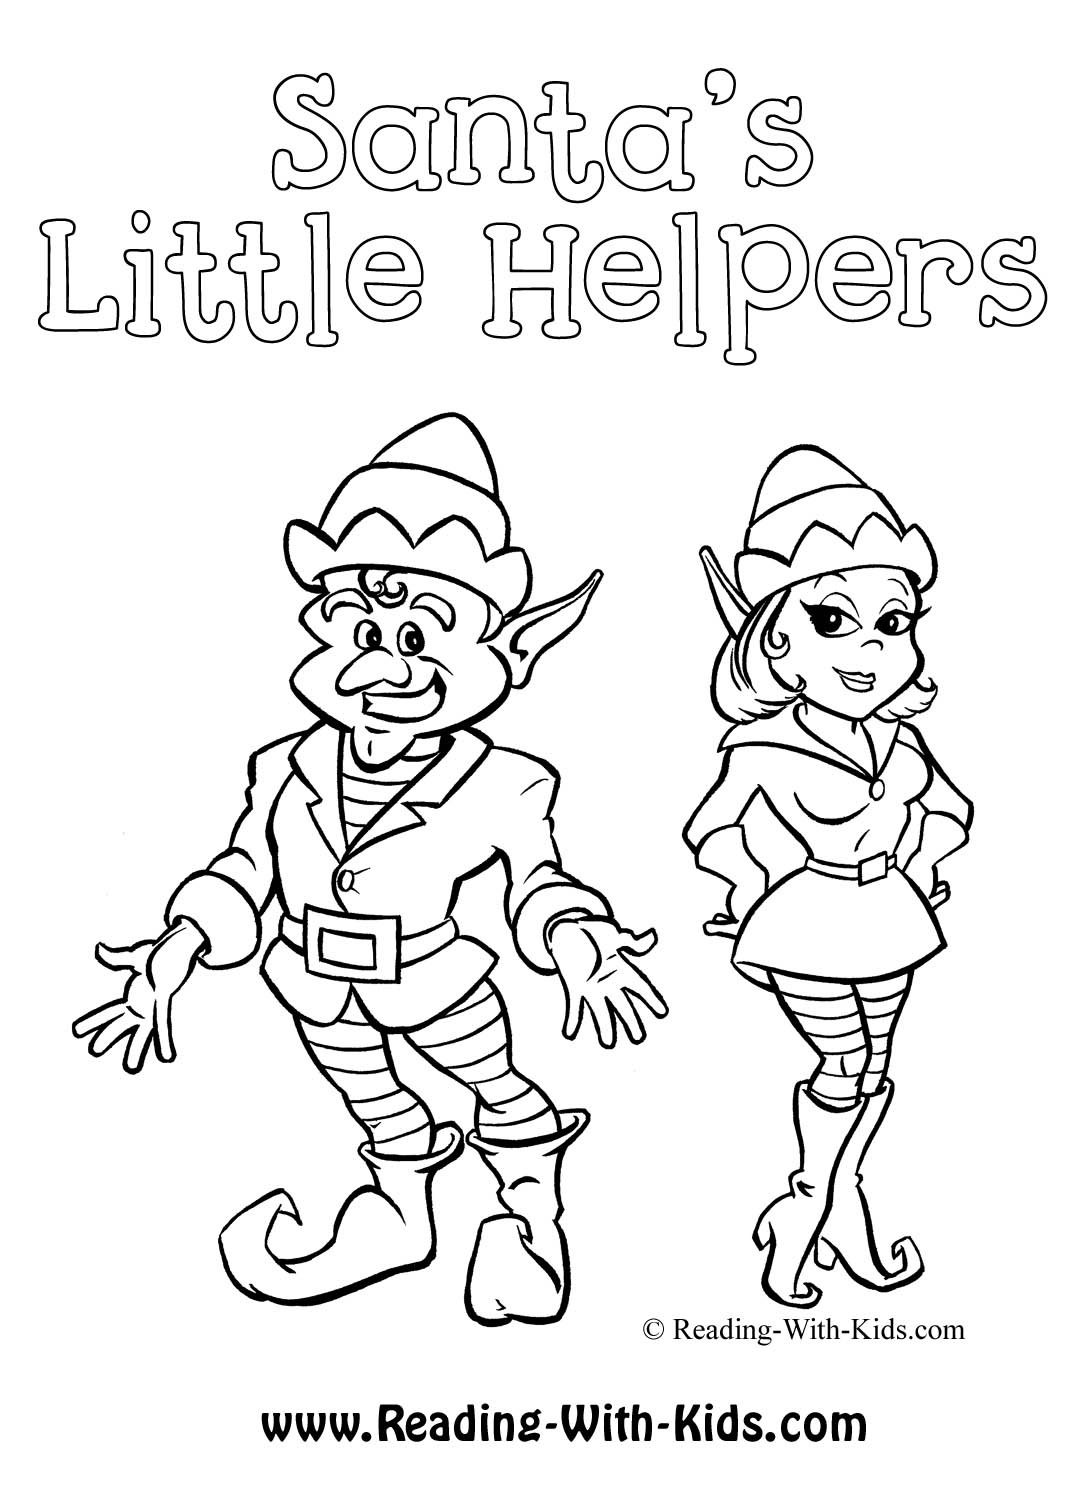 Christmas Elf Coloring Pages Printable With Free Download And On The